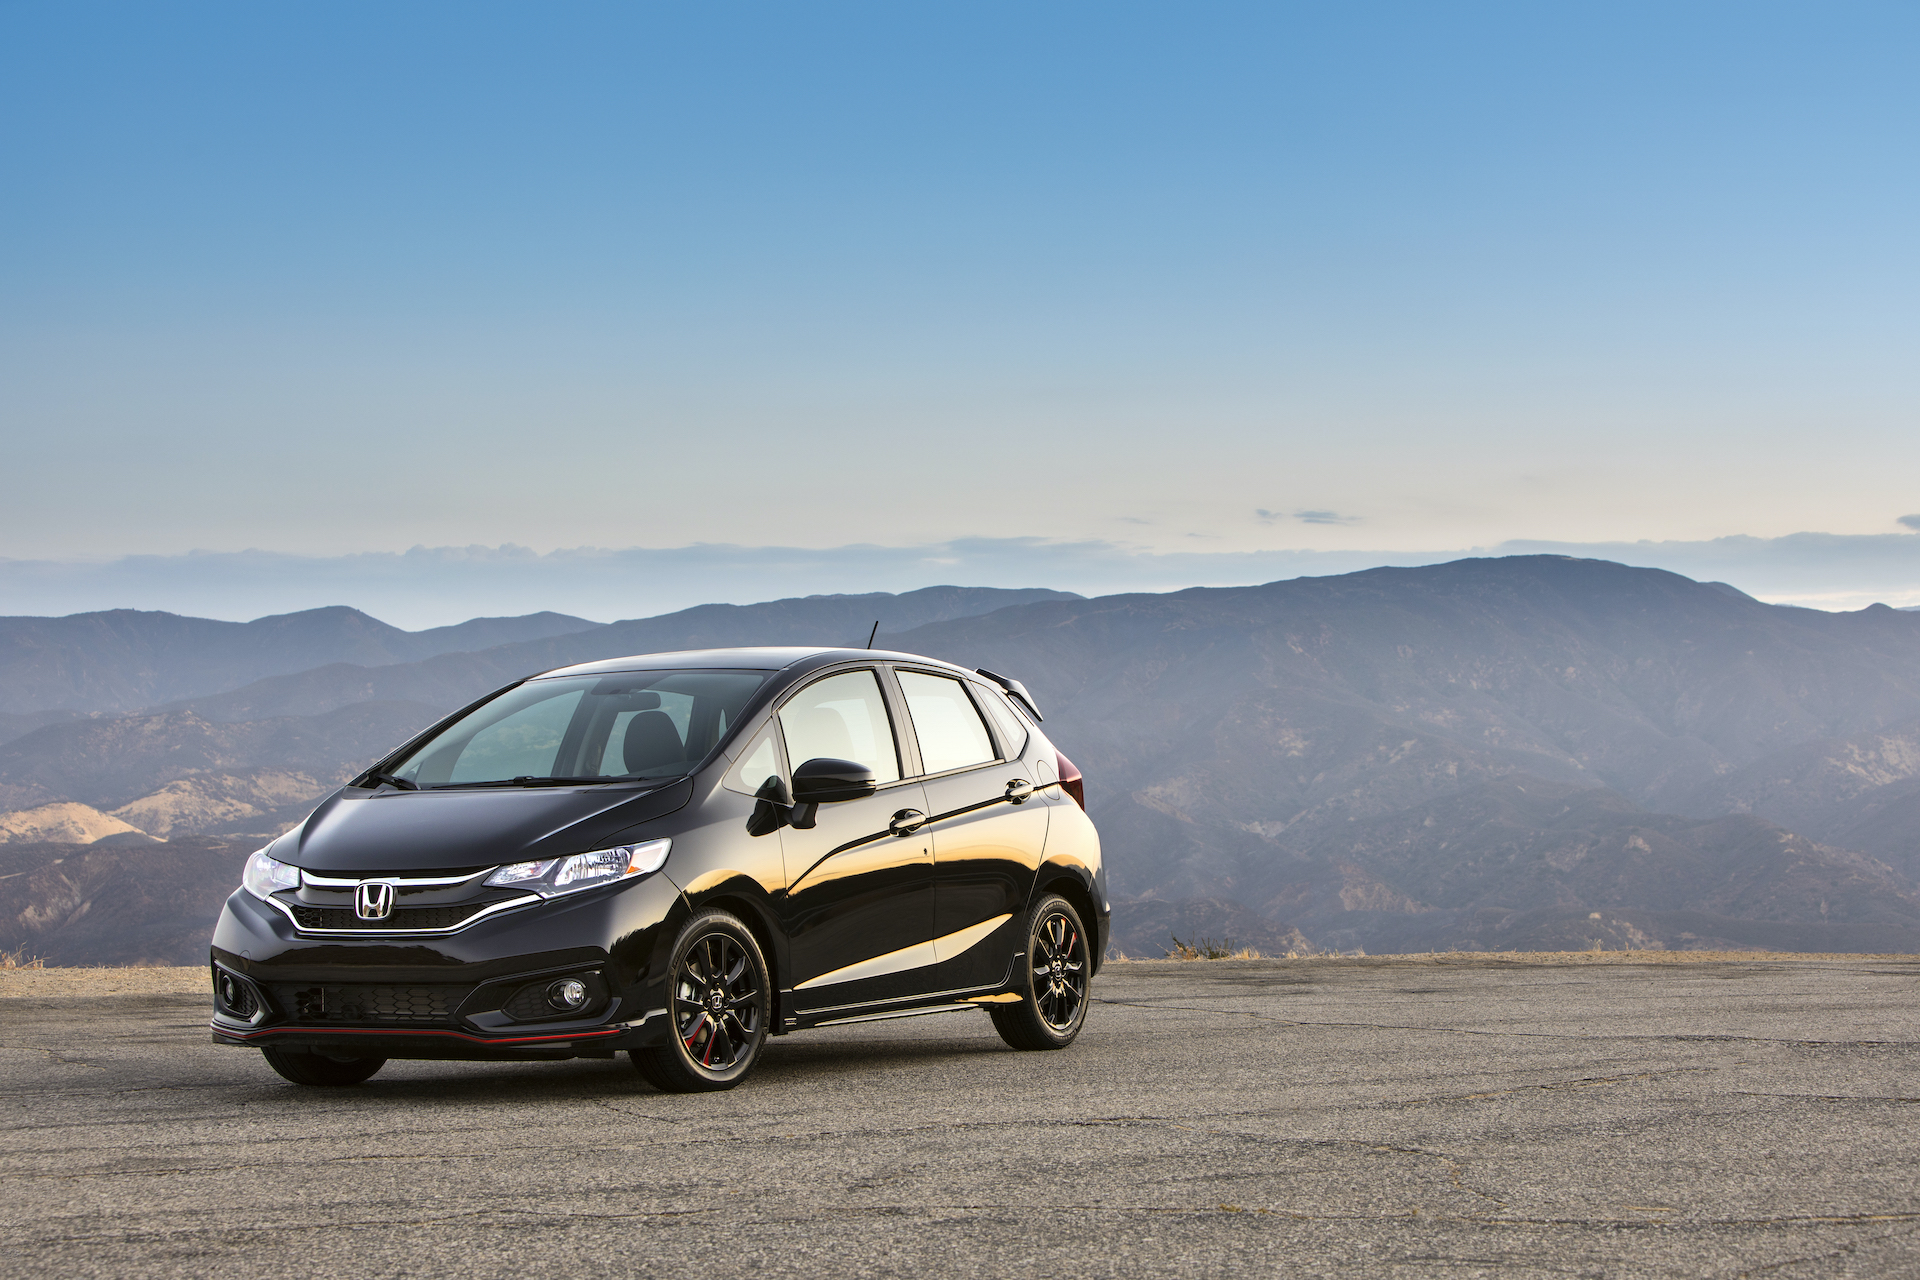 Honda Fit and Toyota Yaris dumped: Have Americans rejected the fuel-efficient small car?